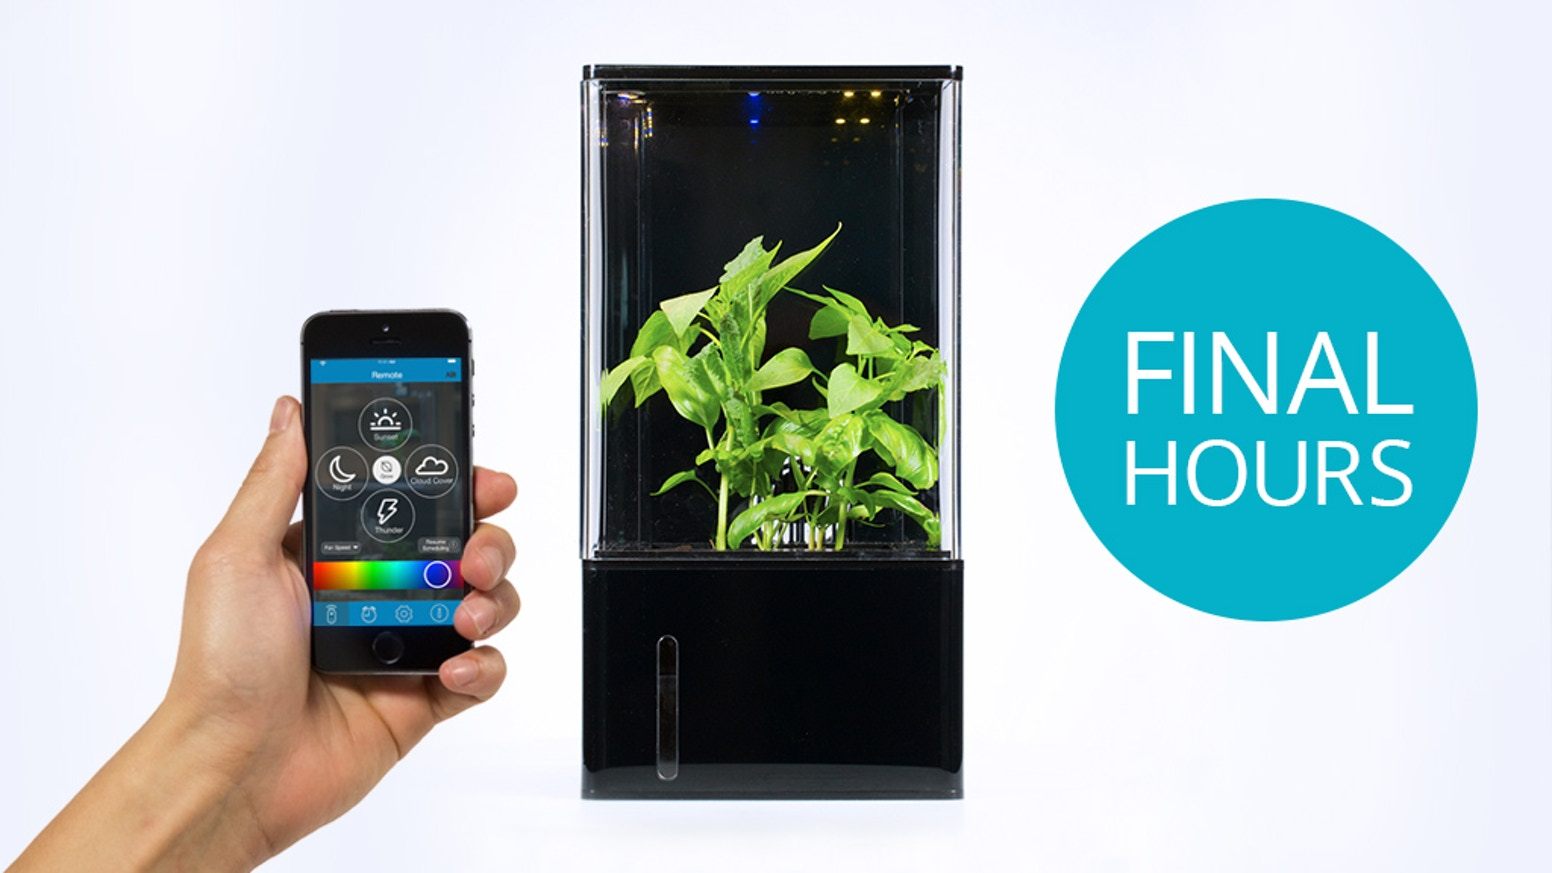 Improve your quality of life, add healthy air, be more productive, and grow plants easily.